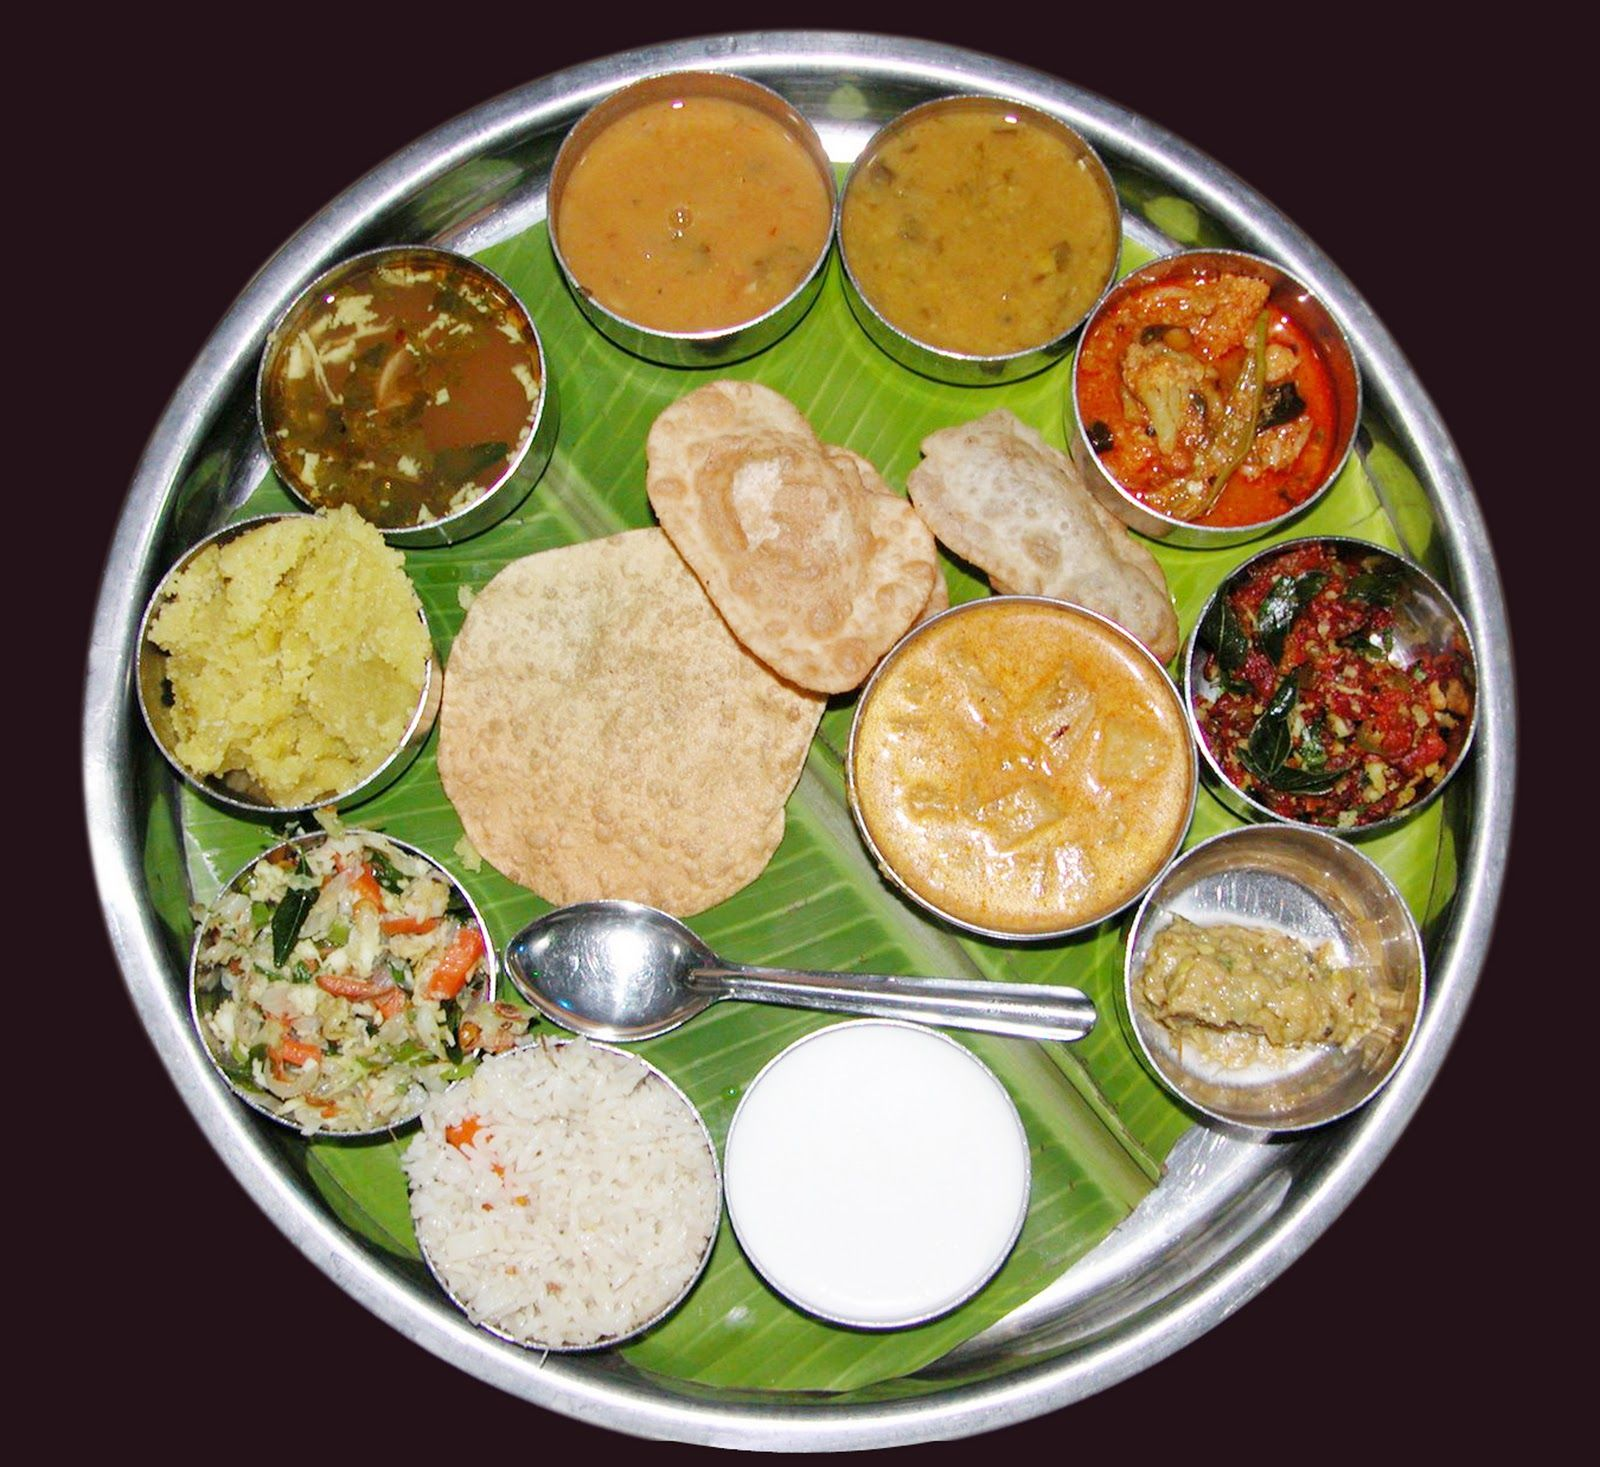 South indian food google search feast for the eyes south indian food google search forumfinder Images